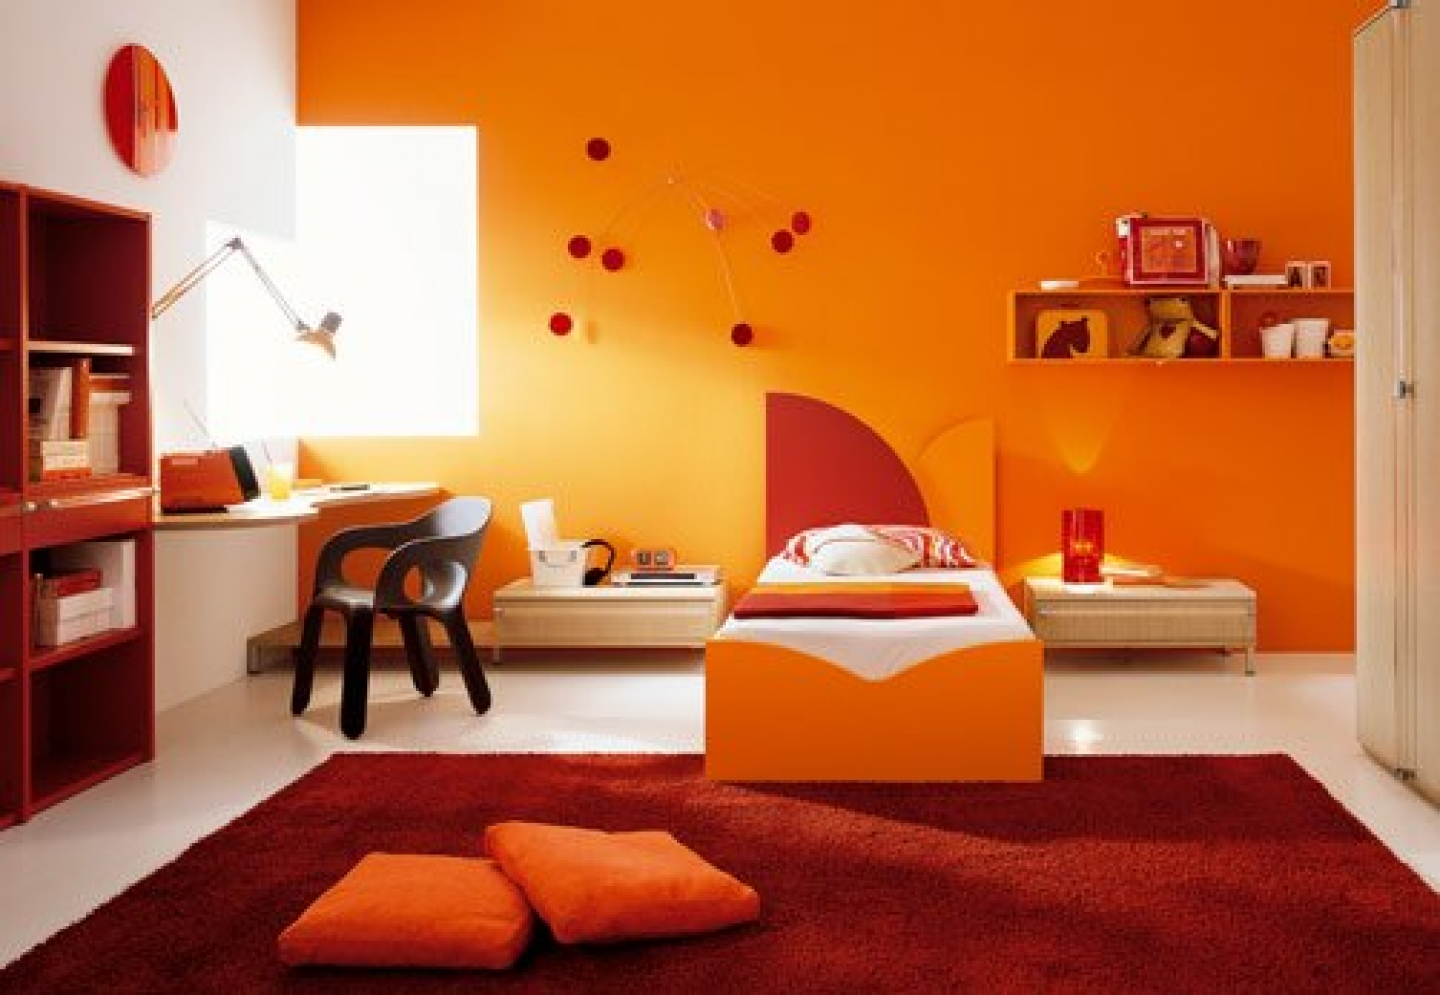 Best Paint Colors For Small Apartments Best Interior Paint Colors For Small Spaces Custom Home